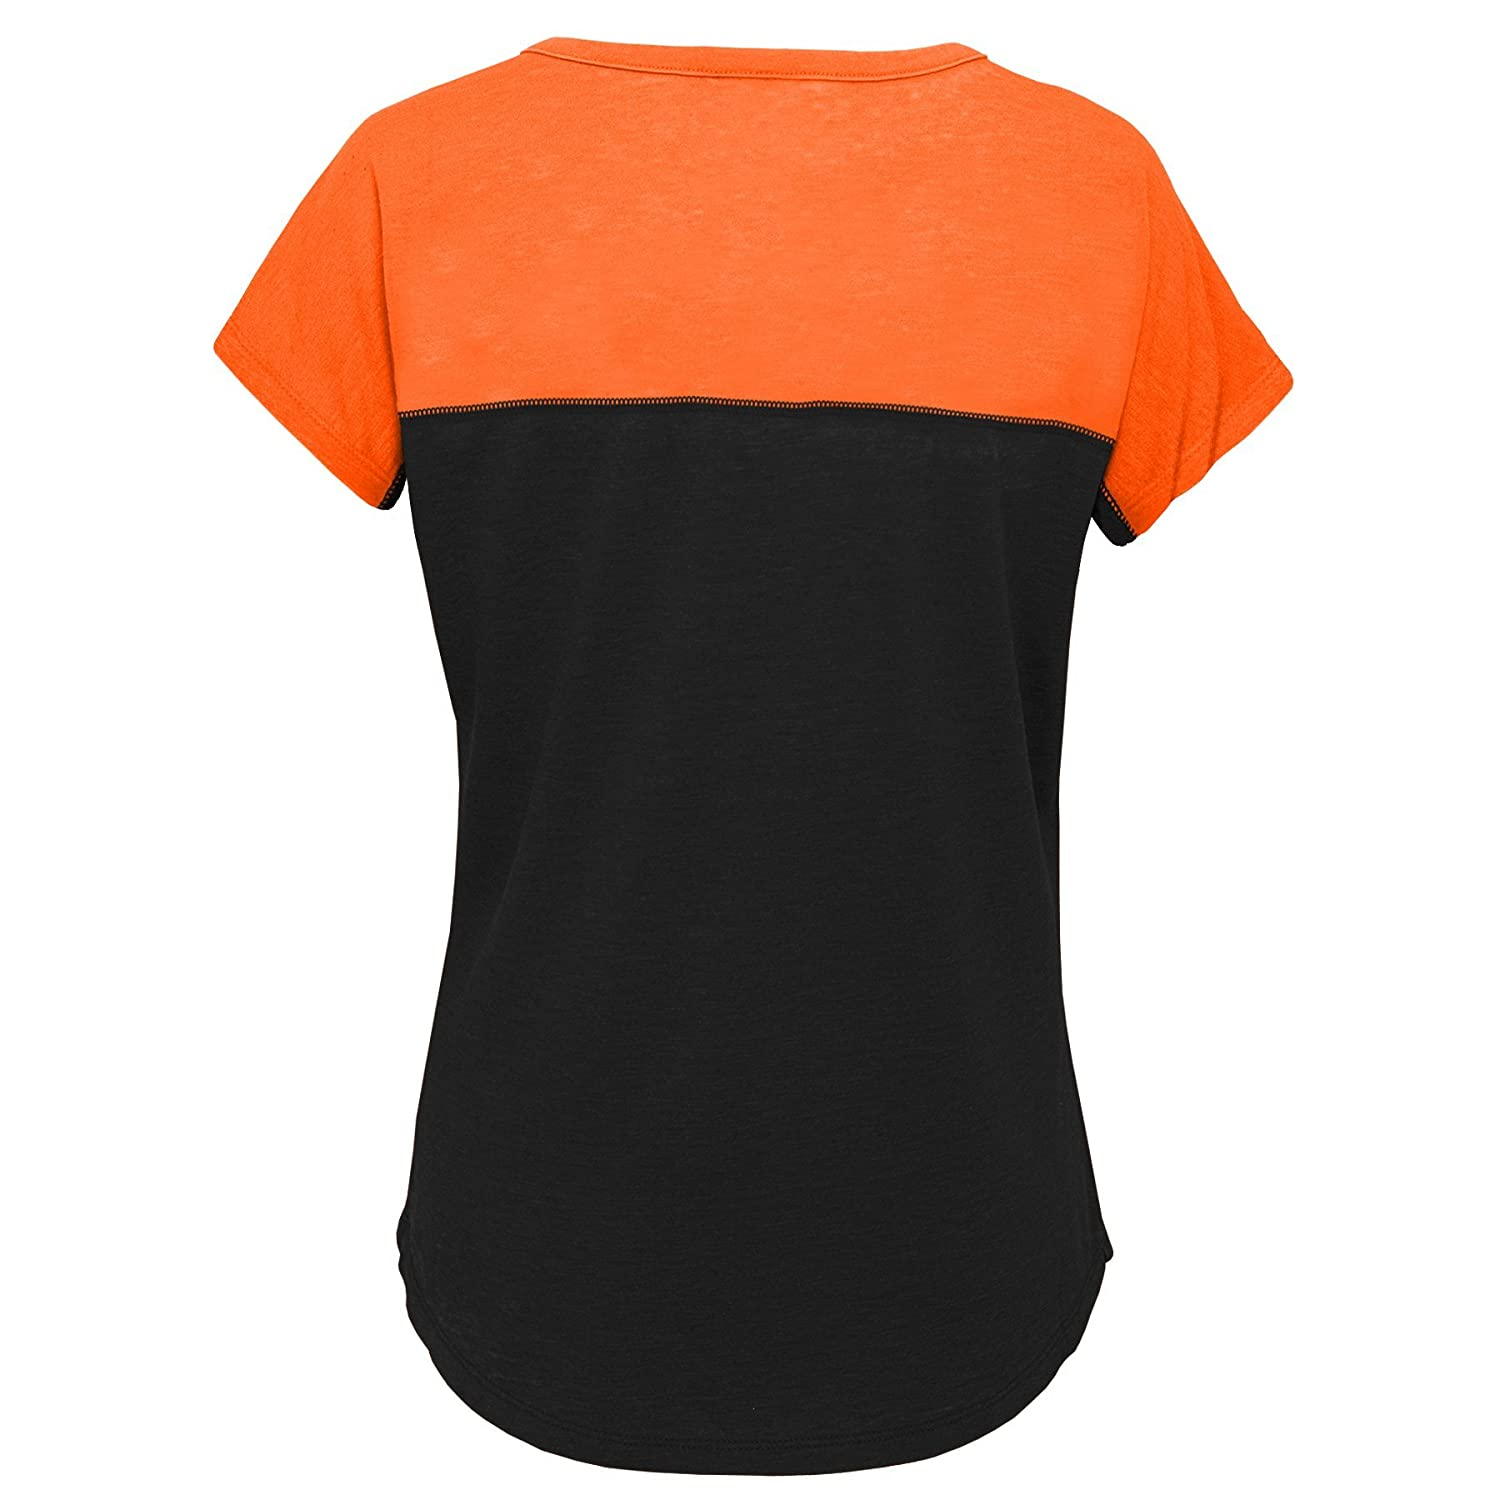 16 NCAA by Outerstuff NCAA Princeton Tigers Youth Girls Tribute Raglan Football Tee Youth X-Large Black